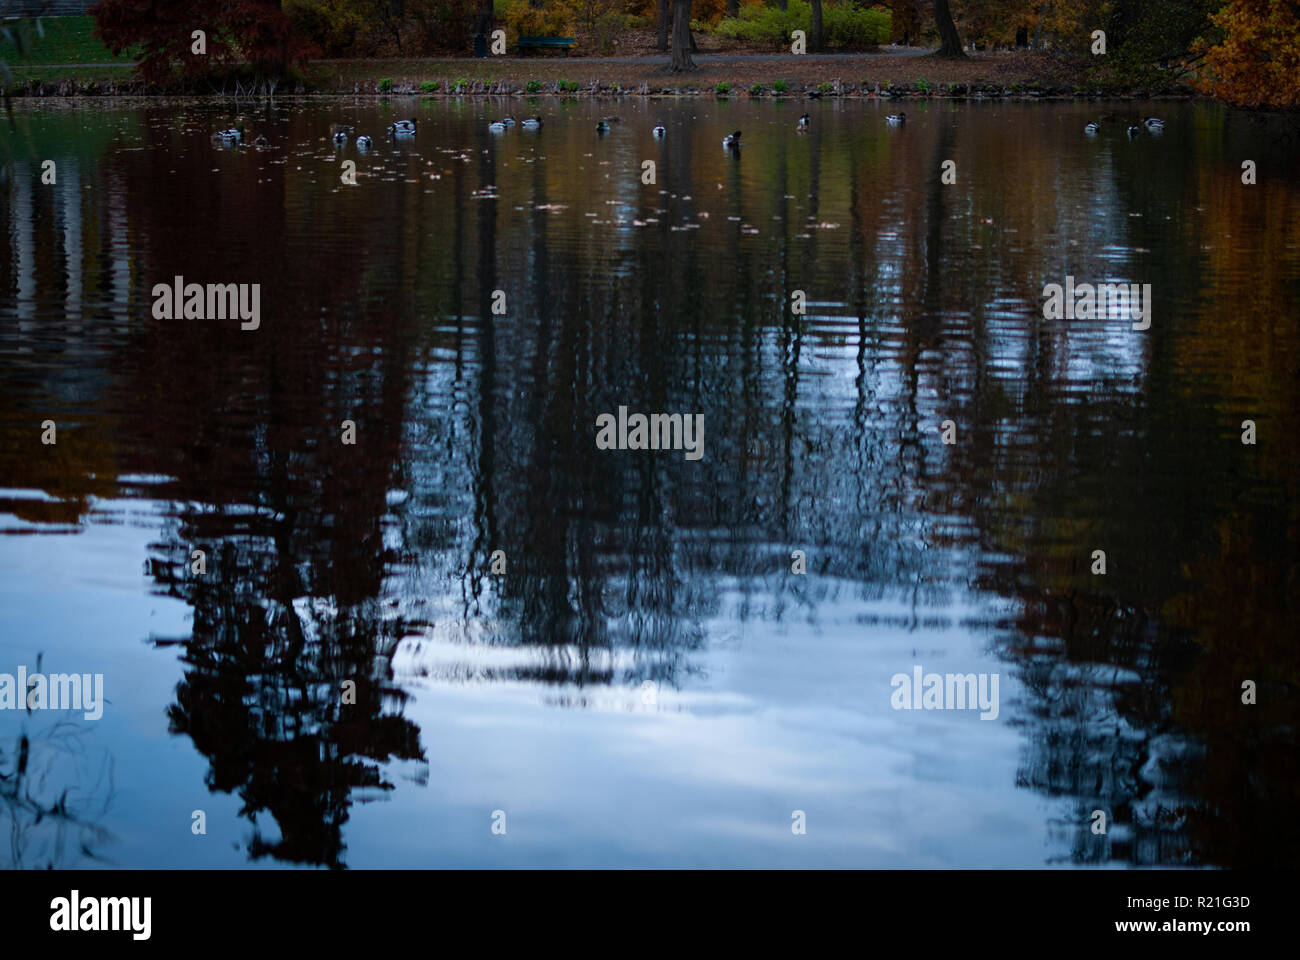 Reflections of the sky and trees in the water - Stock Image